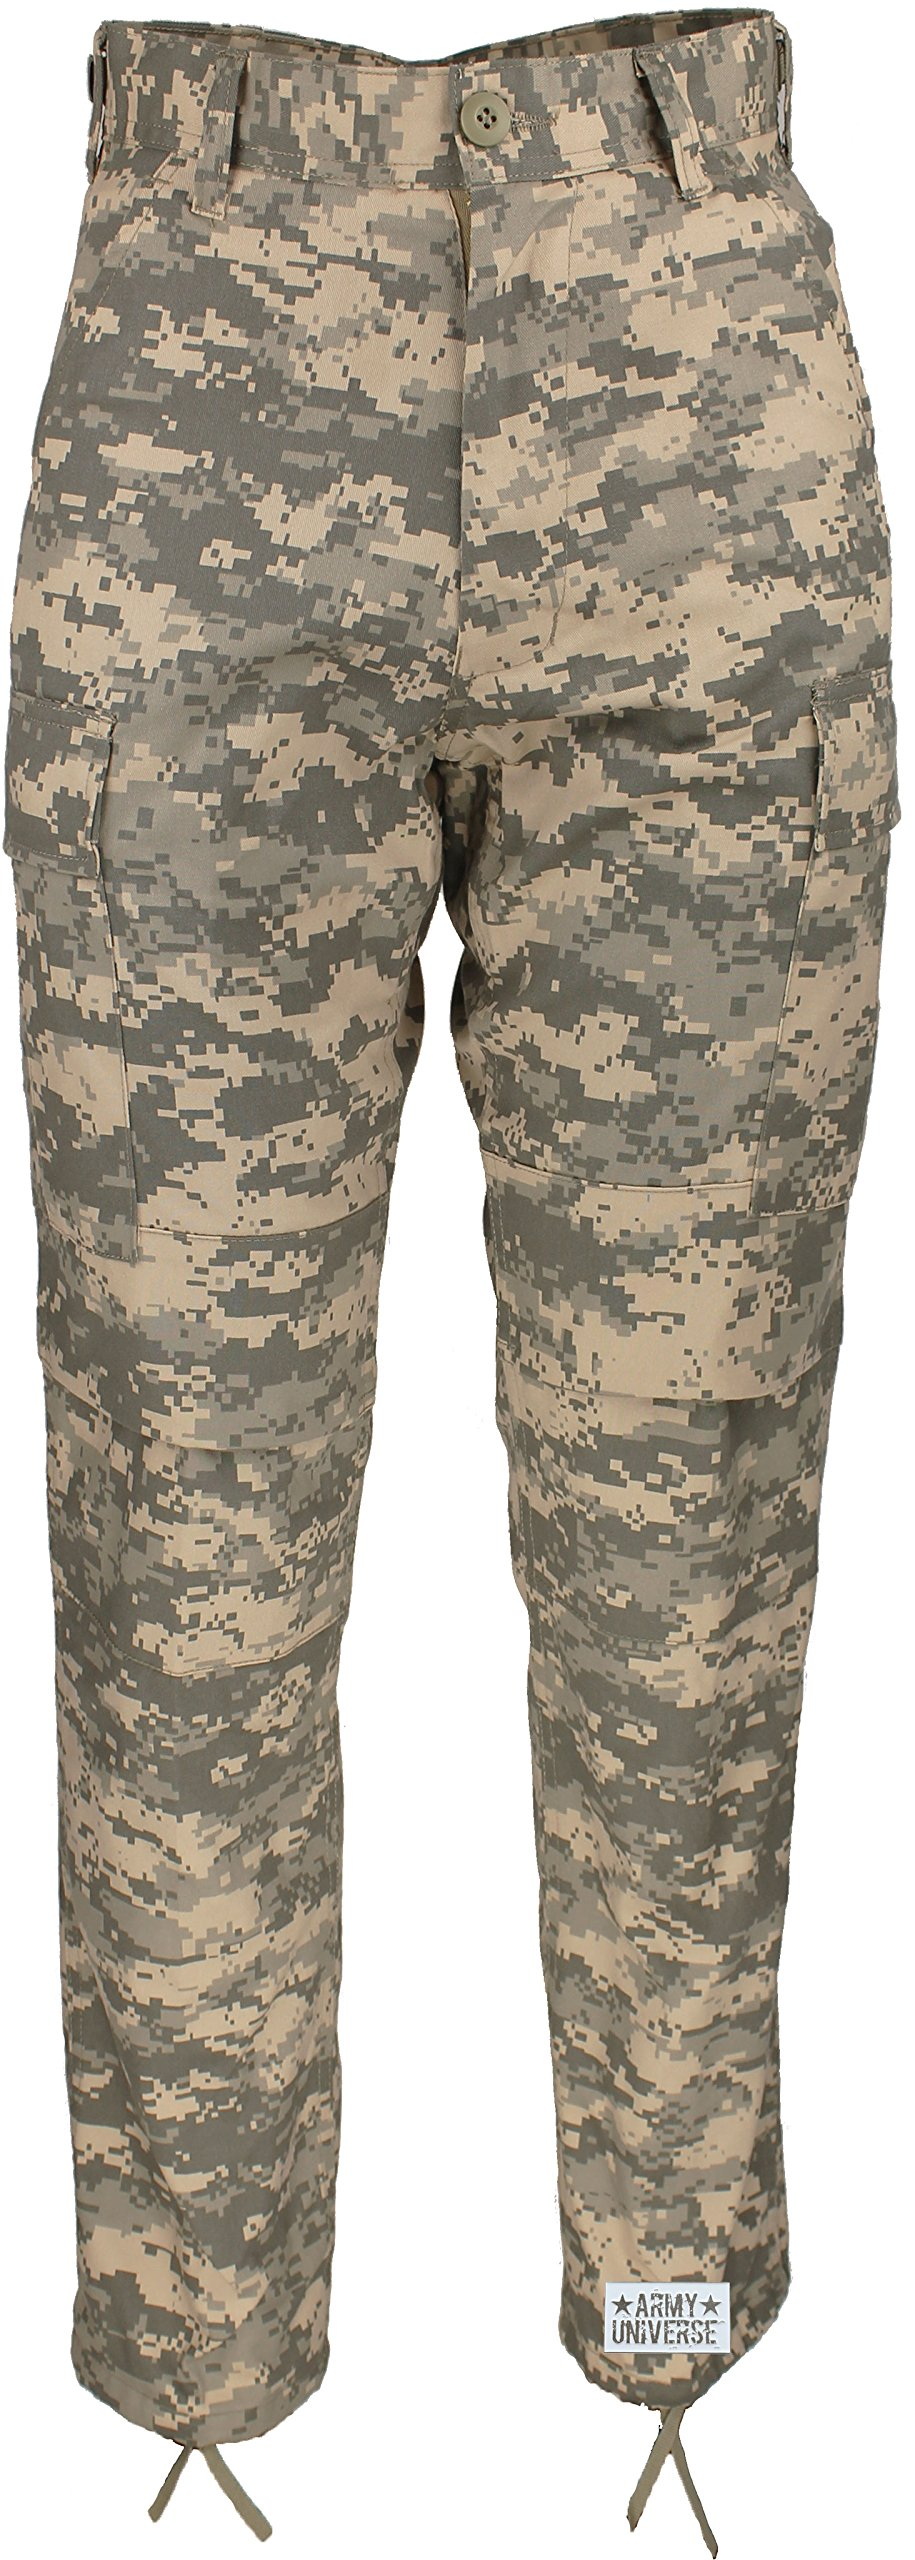 Army Universe Mens ACU Digital Camouflage Military BDU Cargo Pants with Pin  (W 31- 9b62221f9a3